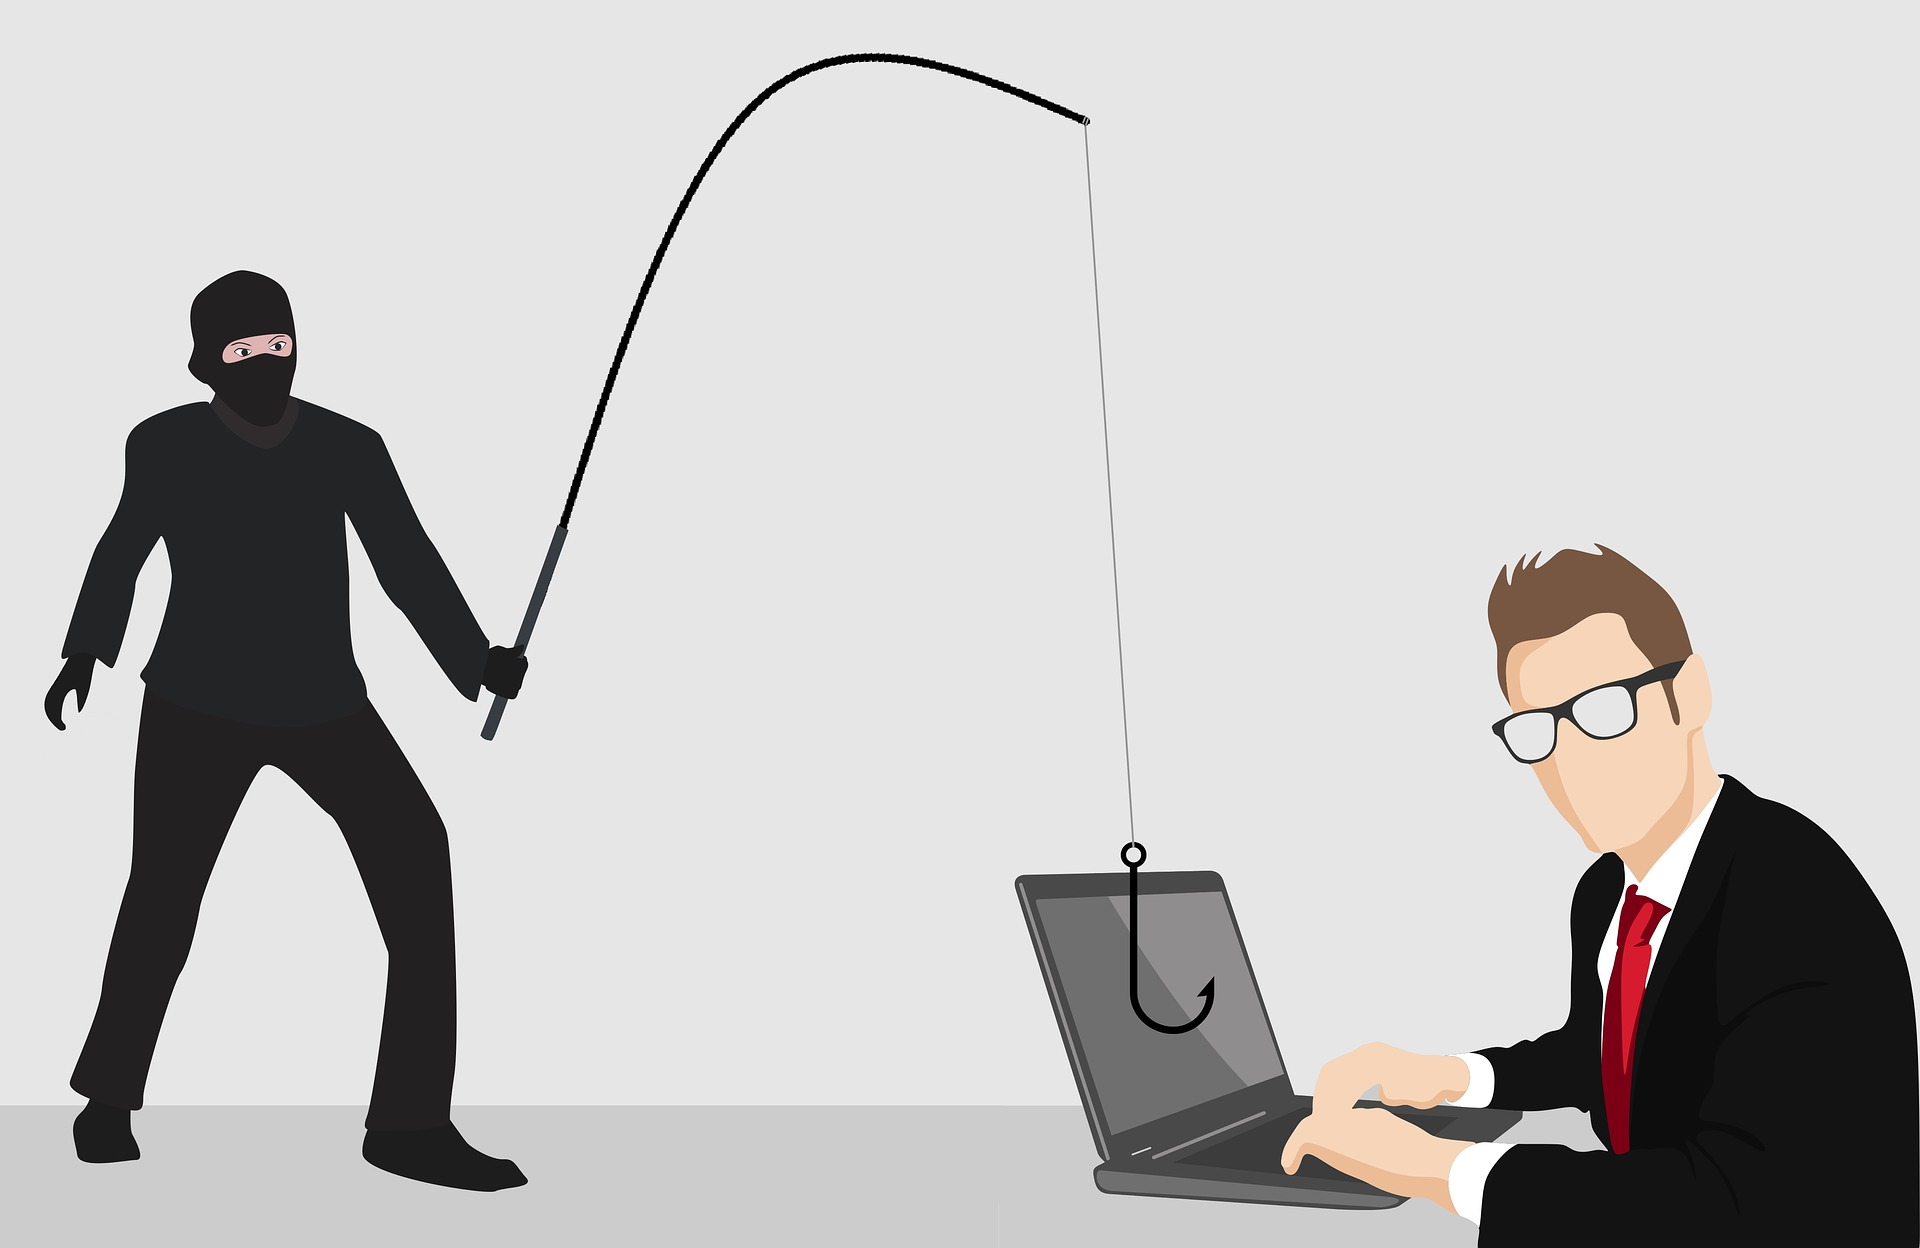 (Spear Phishing) How 1 Employee Can Inadvertently Cost Your Business Millions